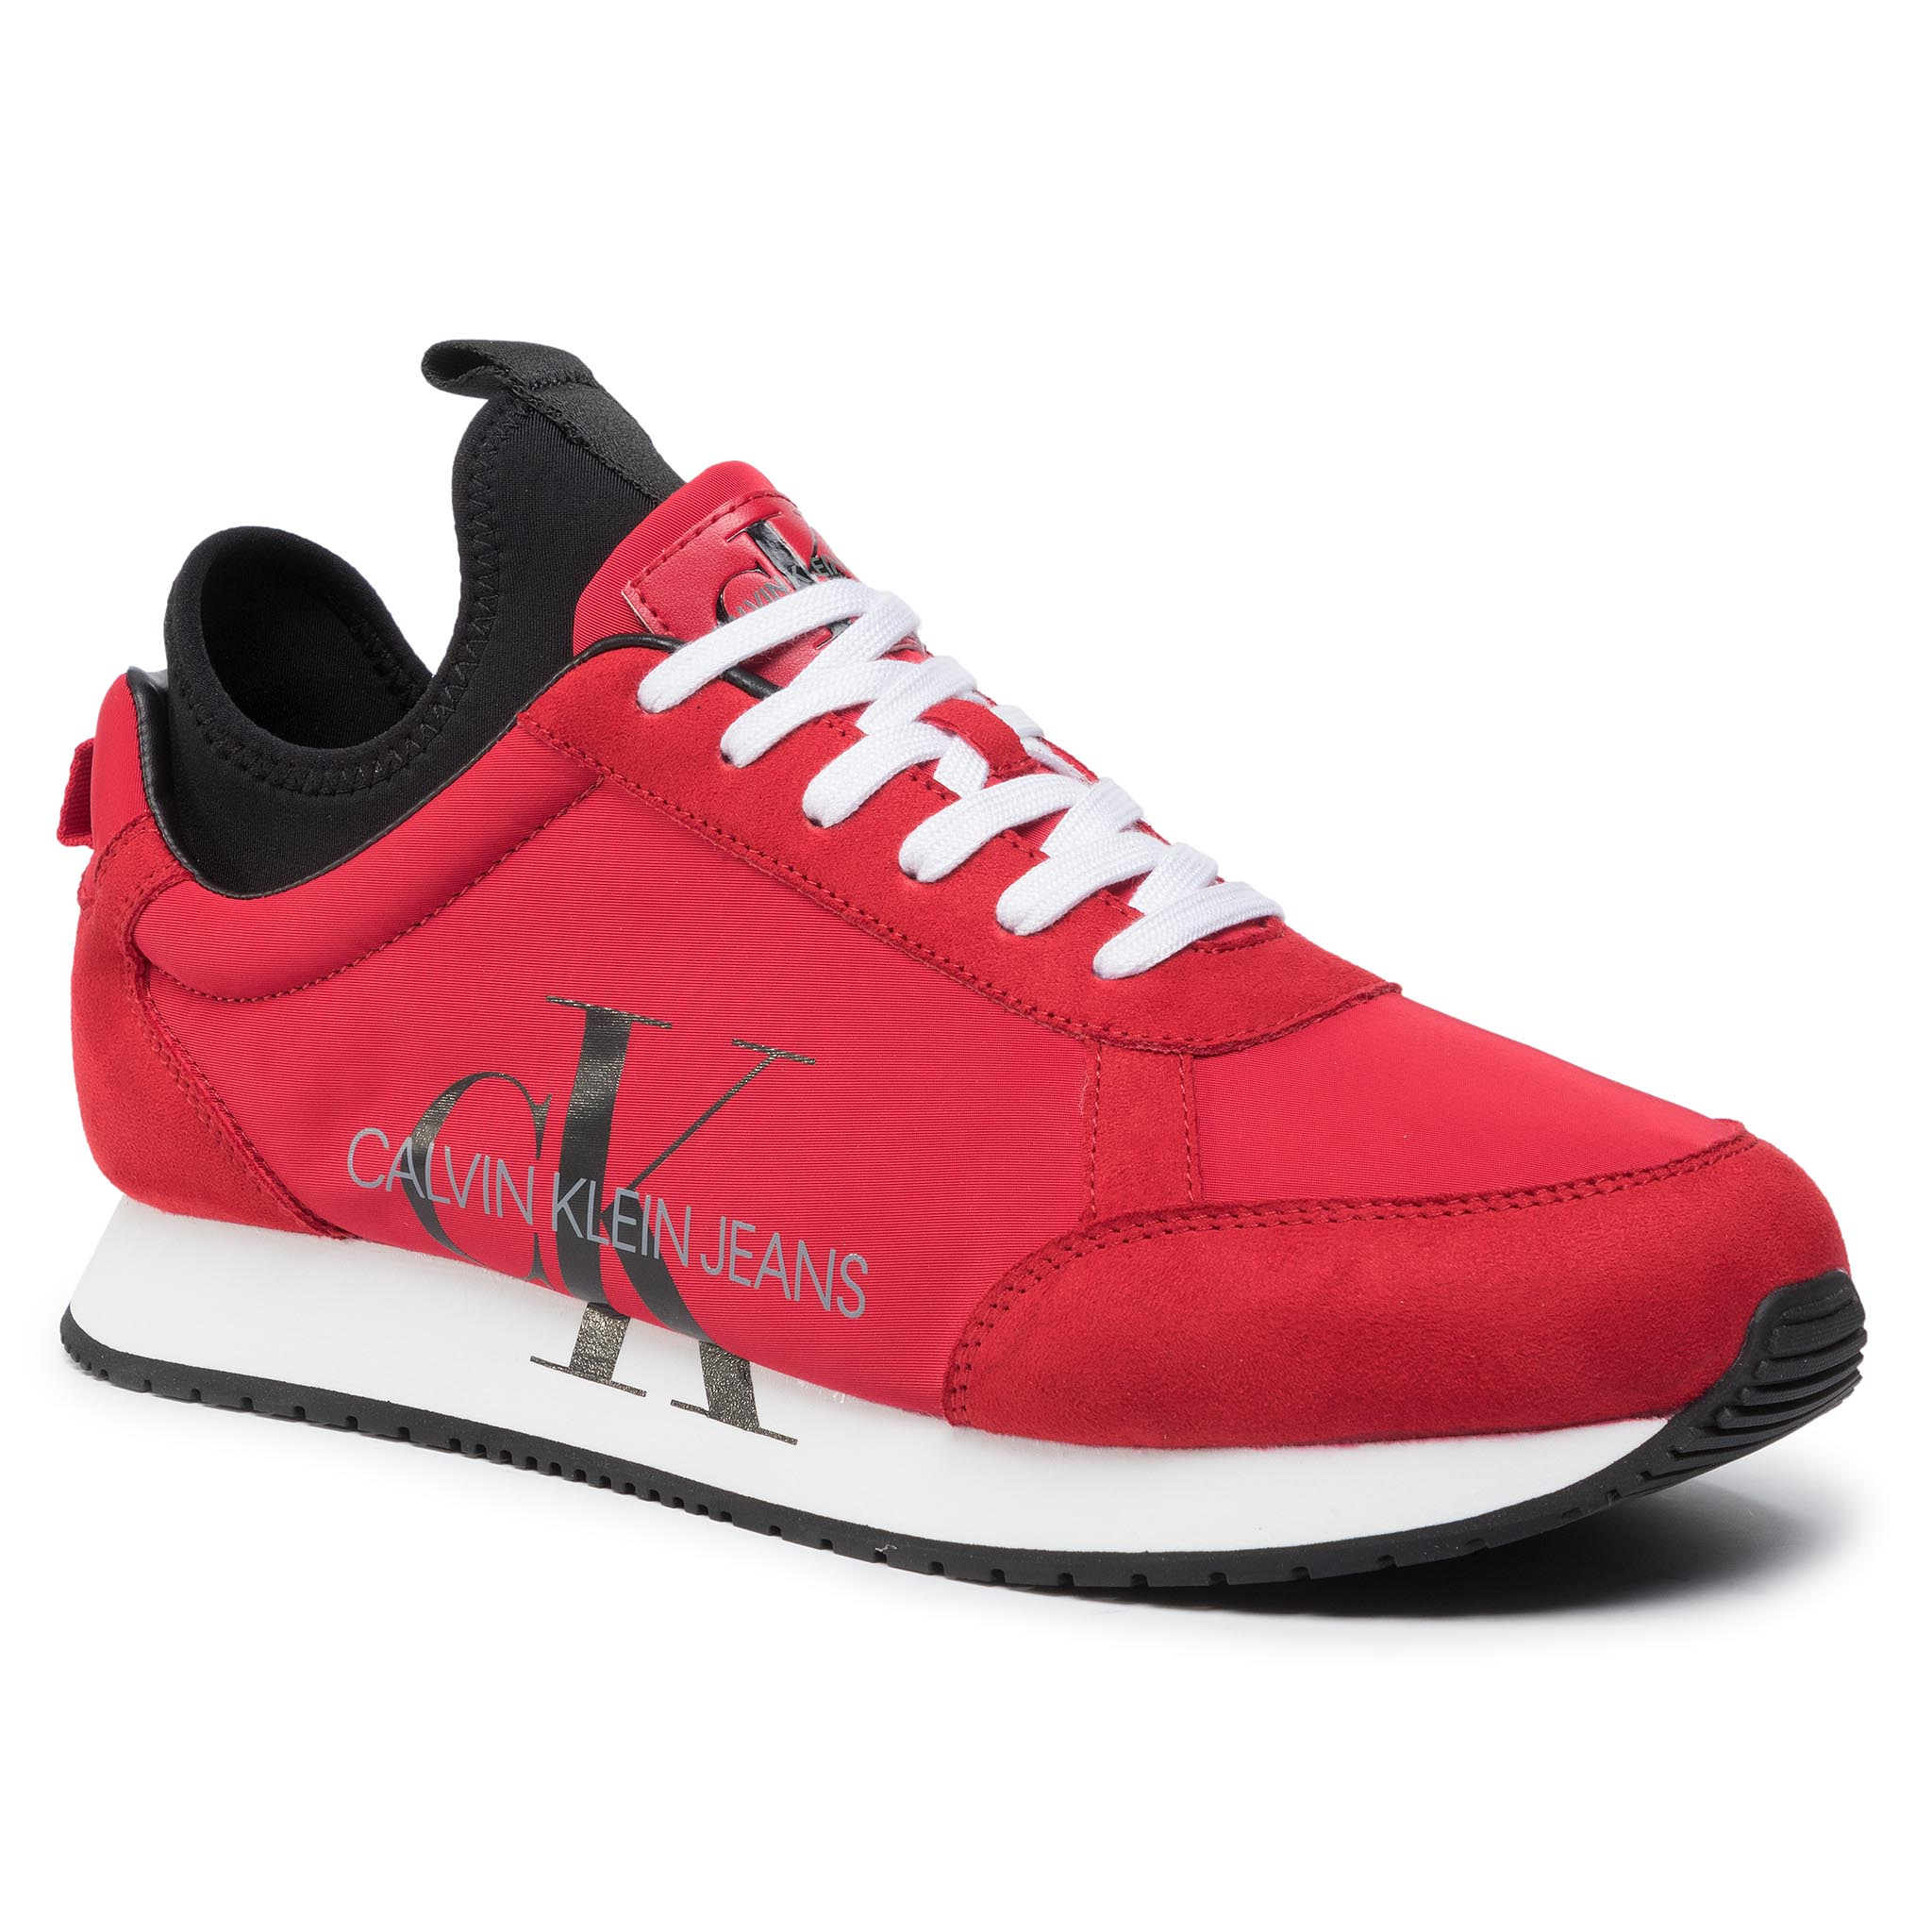 Sneakers CALVIN KLEIN JEANS - Jemmy B4S0136 Racing Red